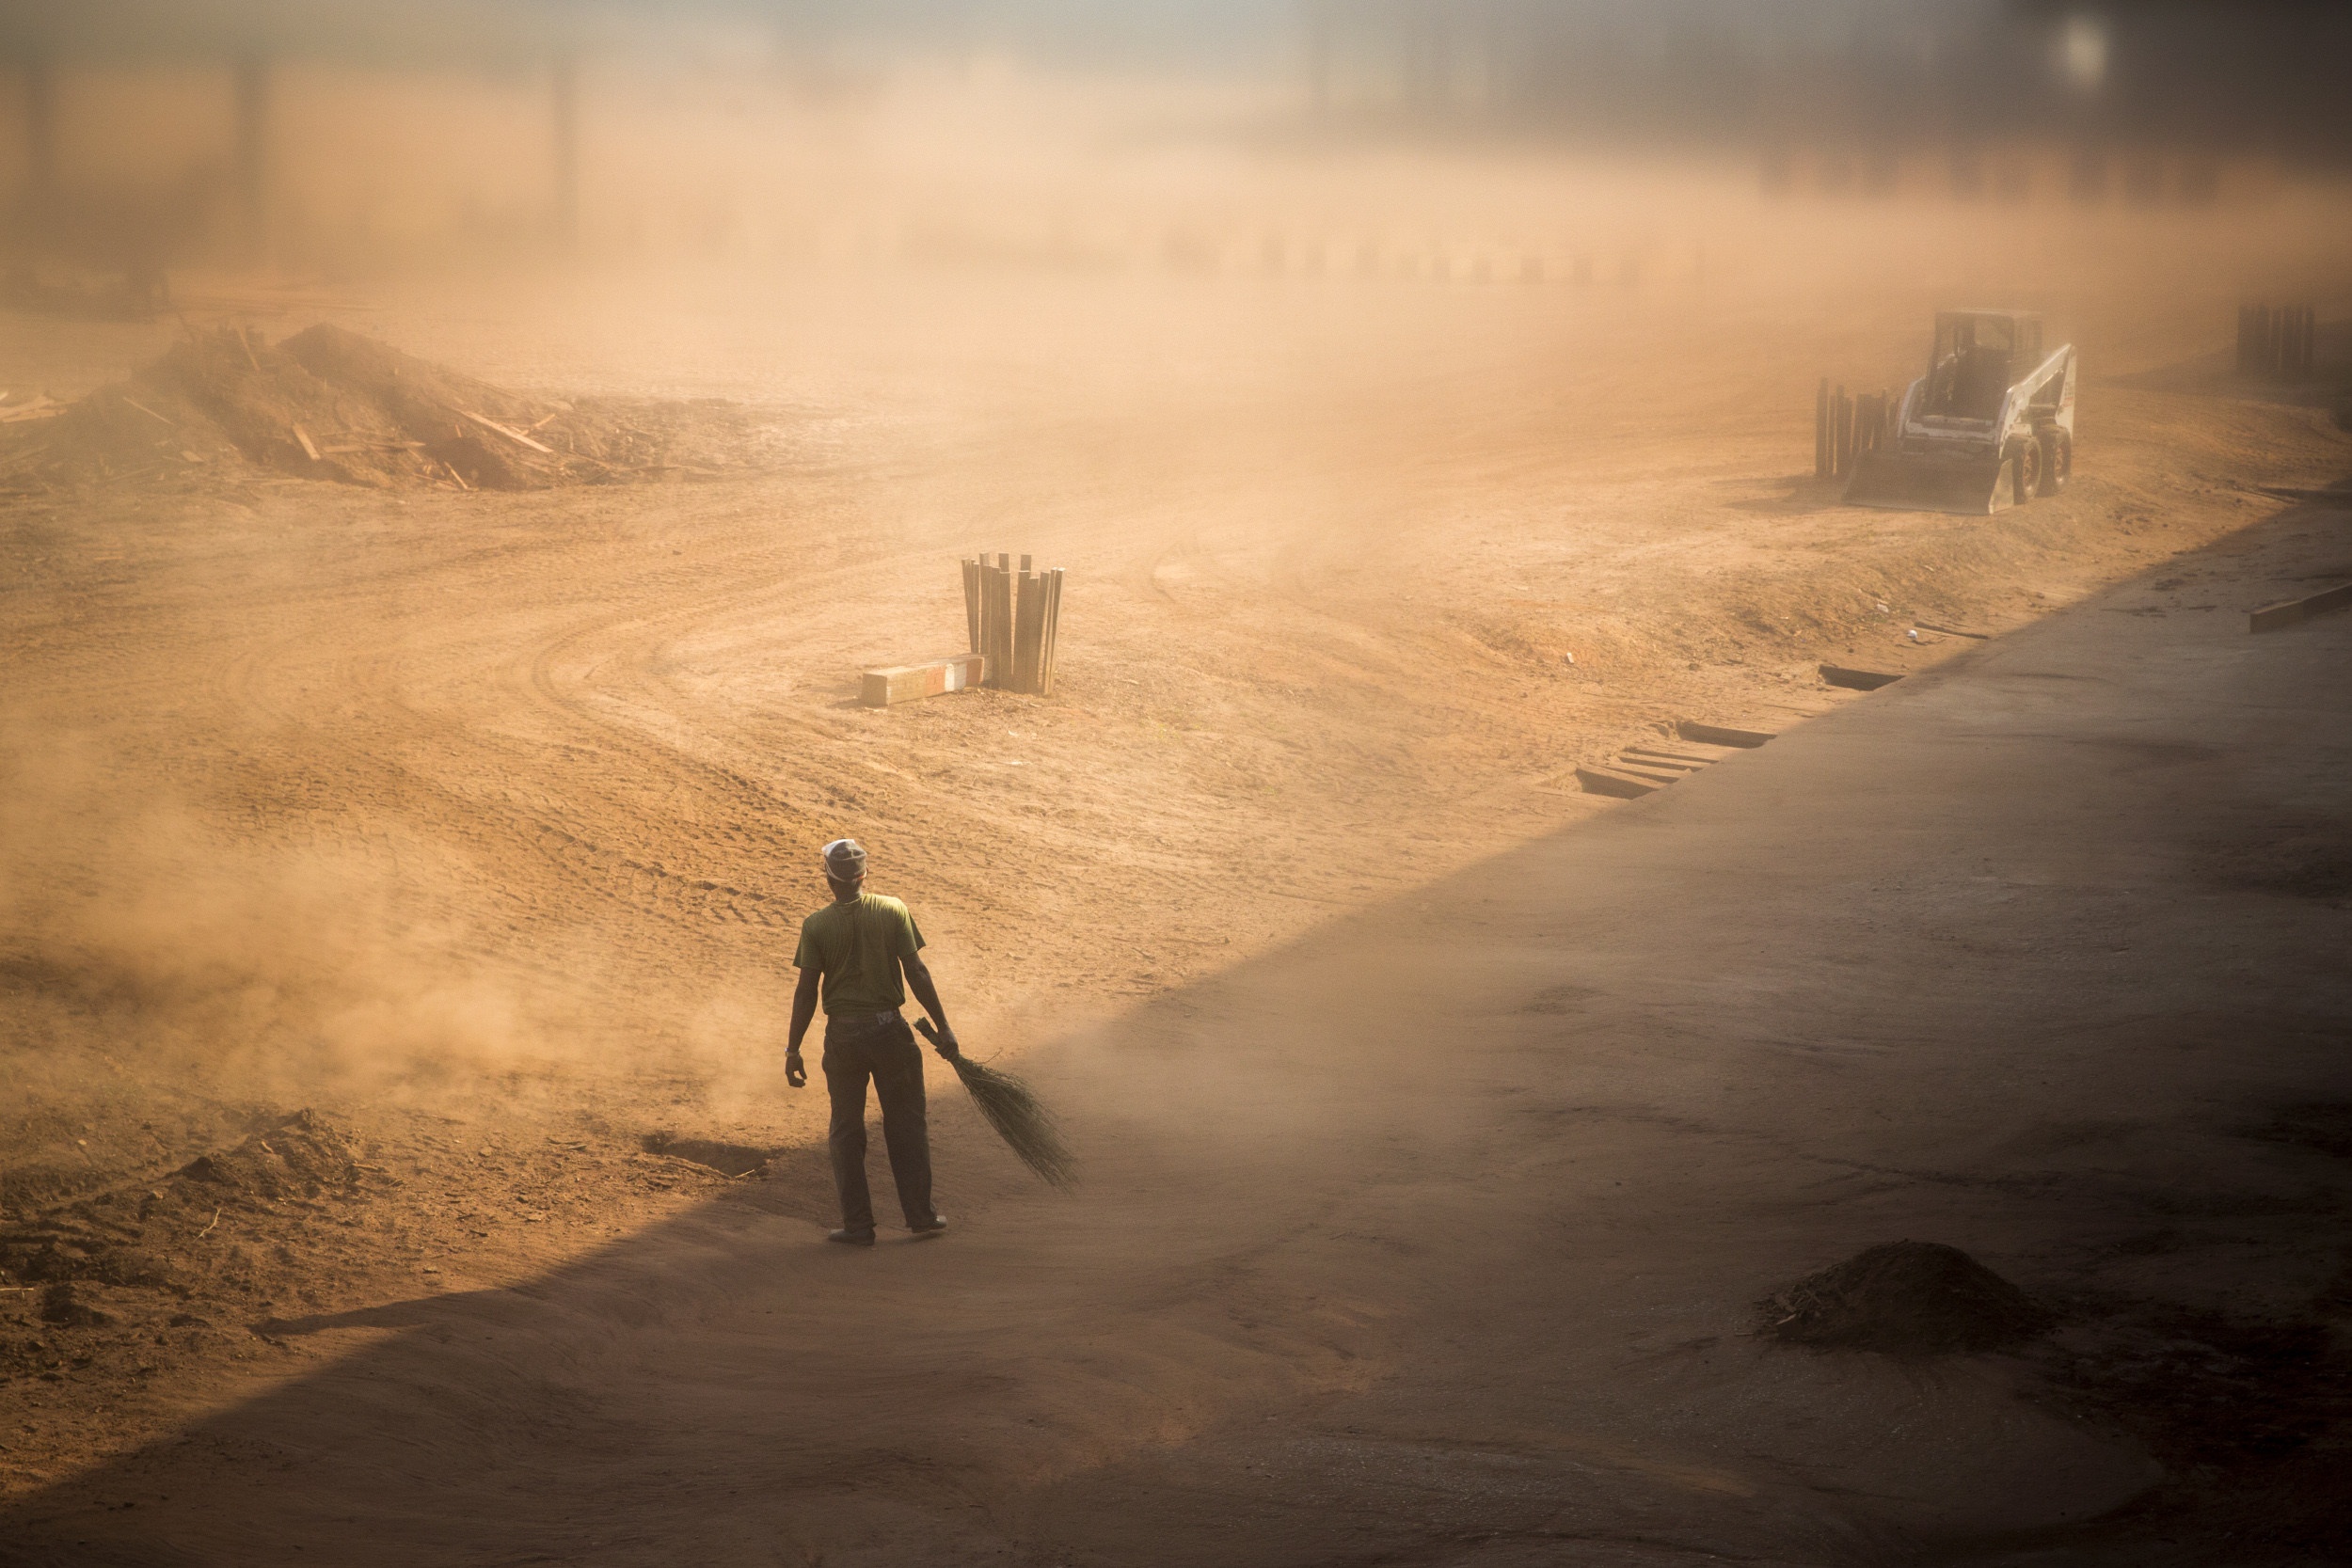 A worker sweeps wood dust at a timber factory near Mambelé, Central African Republic, Dec. 11, 2015. According to a report released by Global Witness last July, foreign logging companies paid millions of euros to Muslim rebels known as Séléka and mostly Christian militias known as antibalaka. Logging companies claim they are forced, like any other companies in the country, to pay bribes for security against attacks. The sector employed approximately 4,000 people—and apparently supported 6,000 indirect jobs, a figure that is now in decline, according to the Minister of Forests.